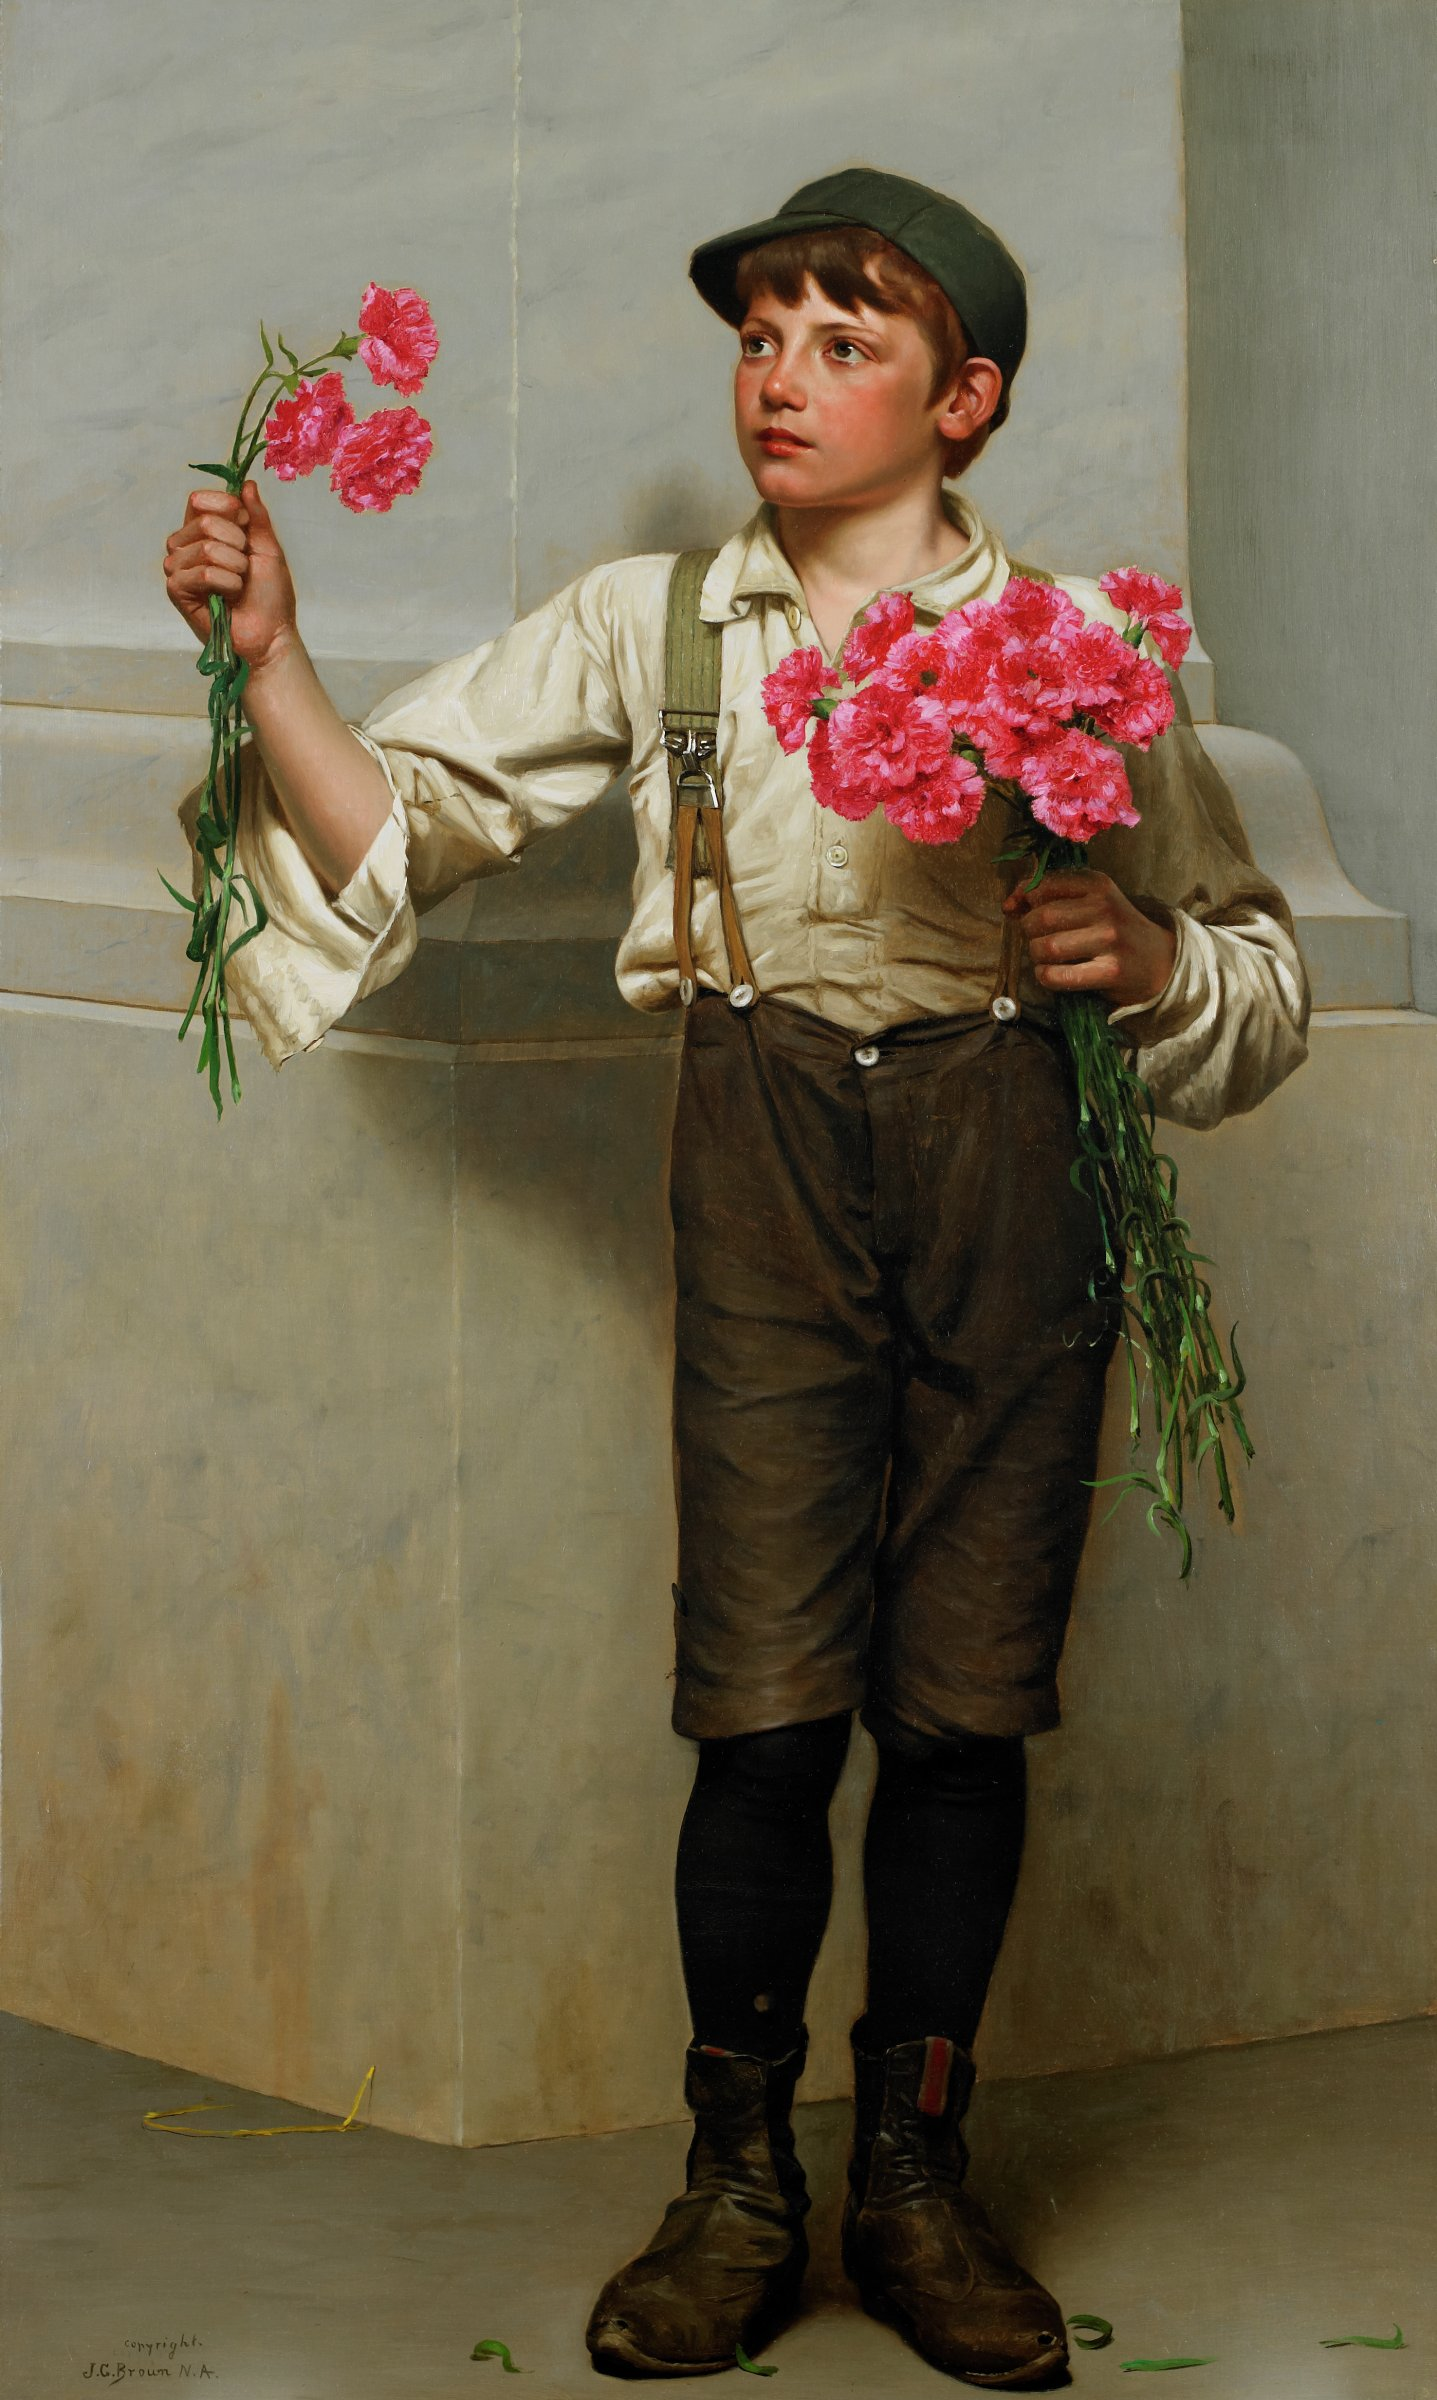 This painting represents a boy standing against the corner of a building, holding pink carnations. In his left hand is a bouquet, and in his right hand are three flowers. He wears a cap, a white shirt with the collar and cuffs open, suspenders, brown breeches, black stockings, and black boots. Leaves from the carnations surround his feet.